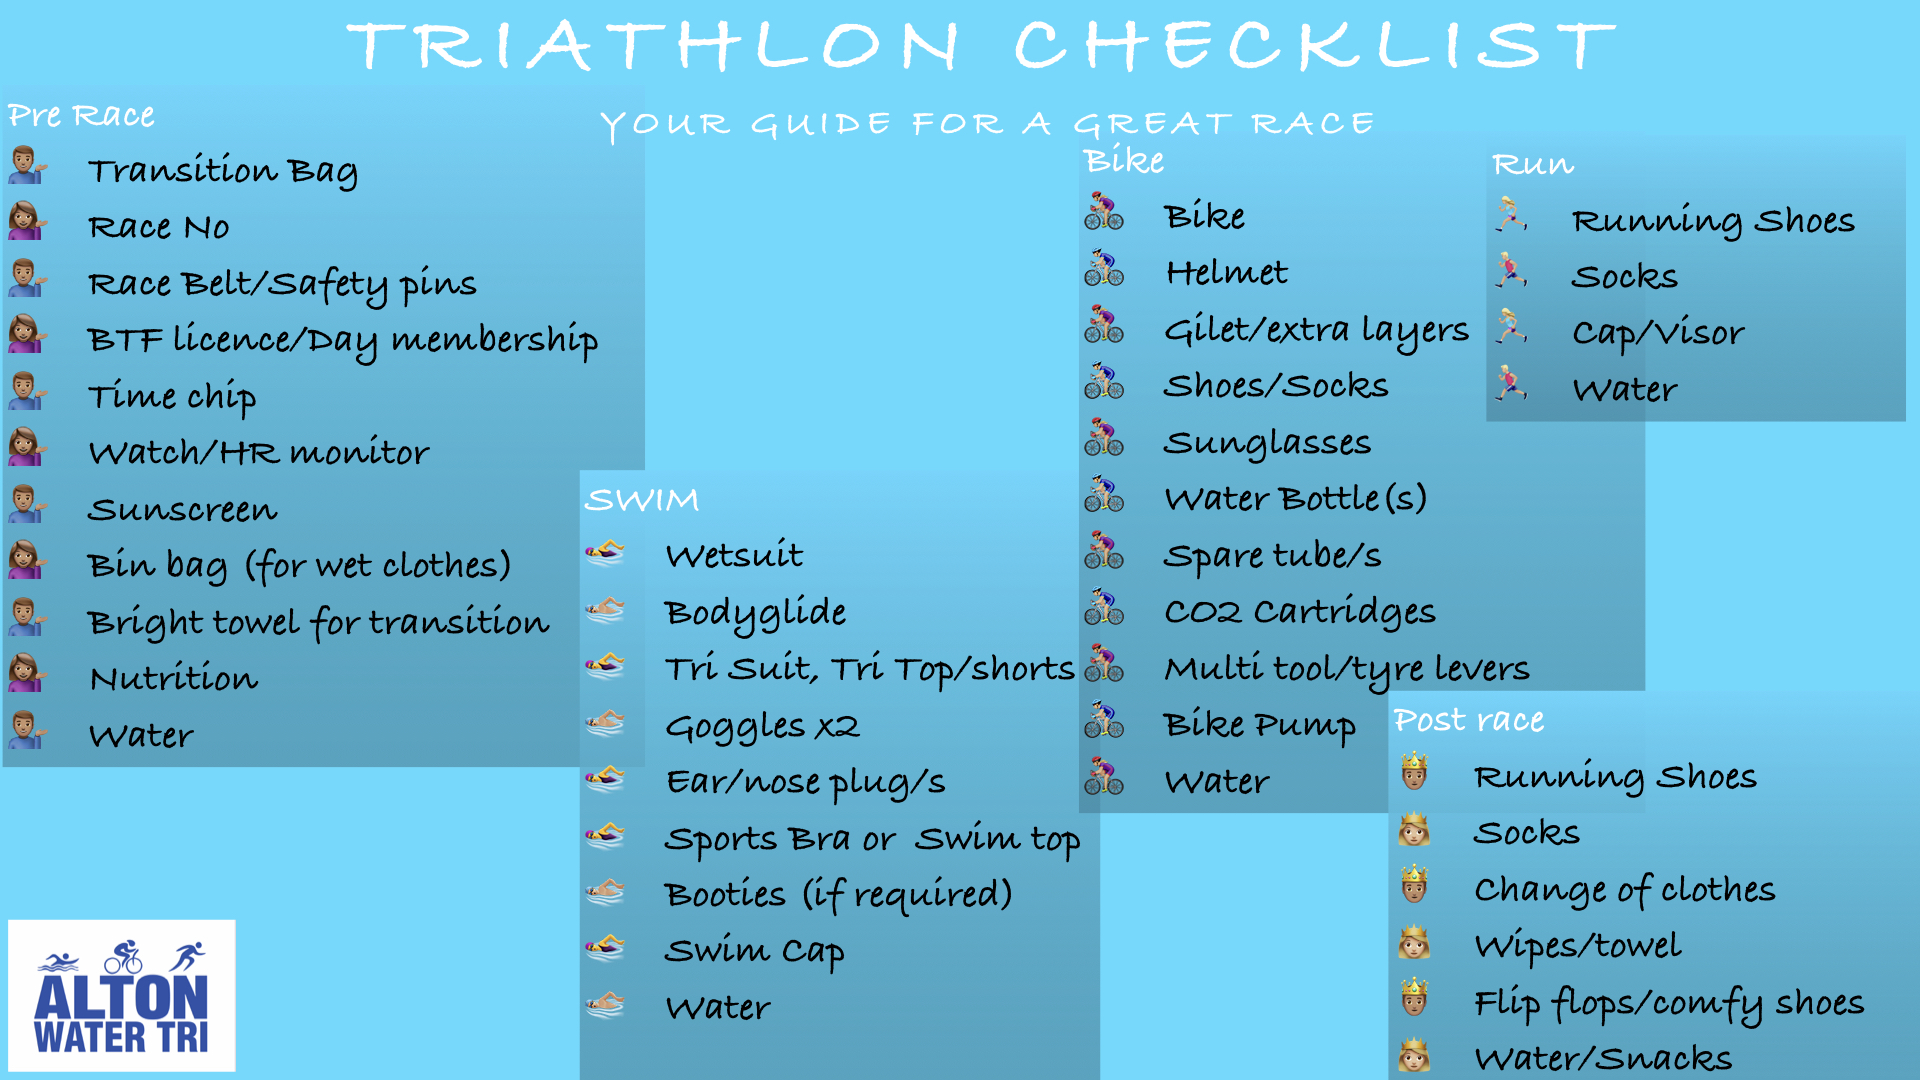 Alton Triathlon Checklist.001.jpeg